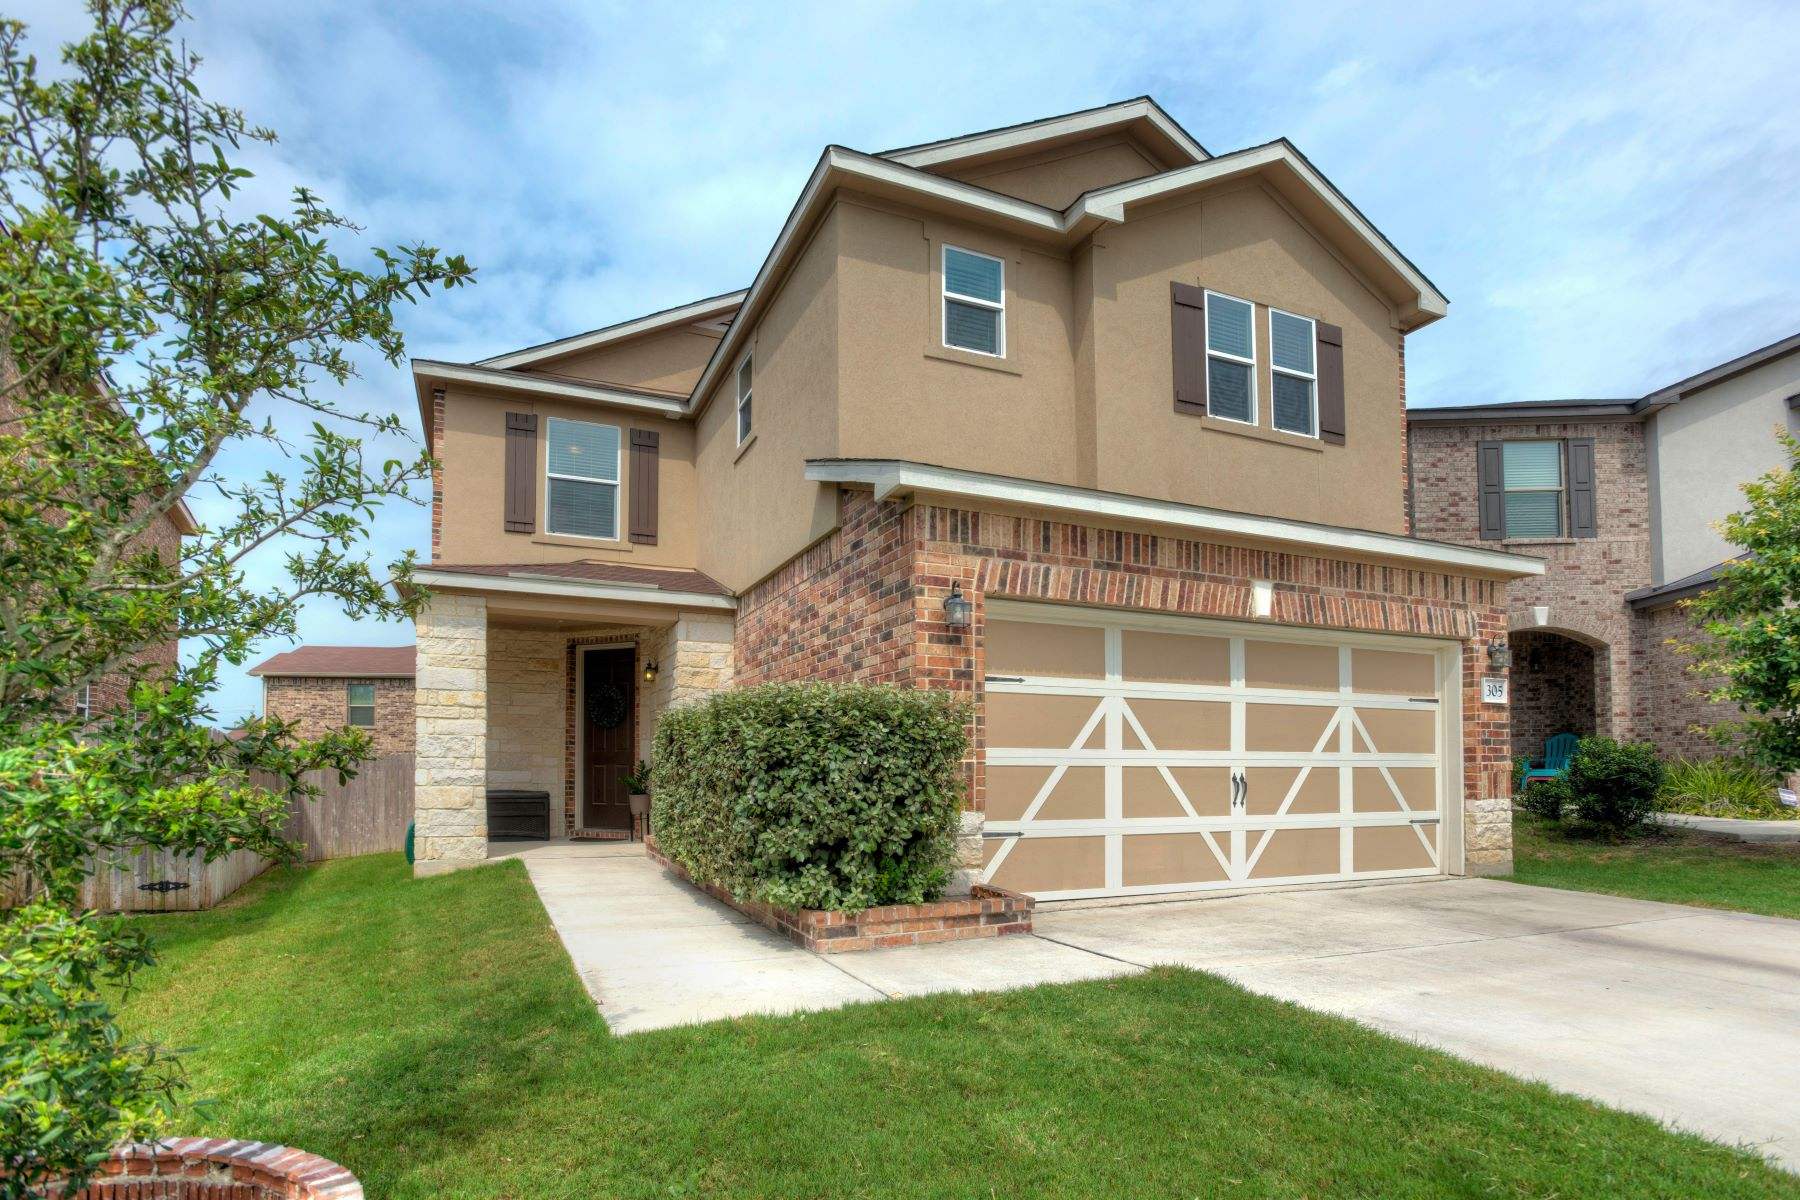 Single Family Homes for Sale at Charming Home On Quiet Cul-de-sac 305 Mystic Topaz Universal City, Texas 78148 United States